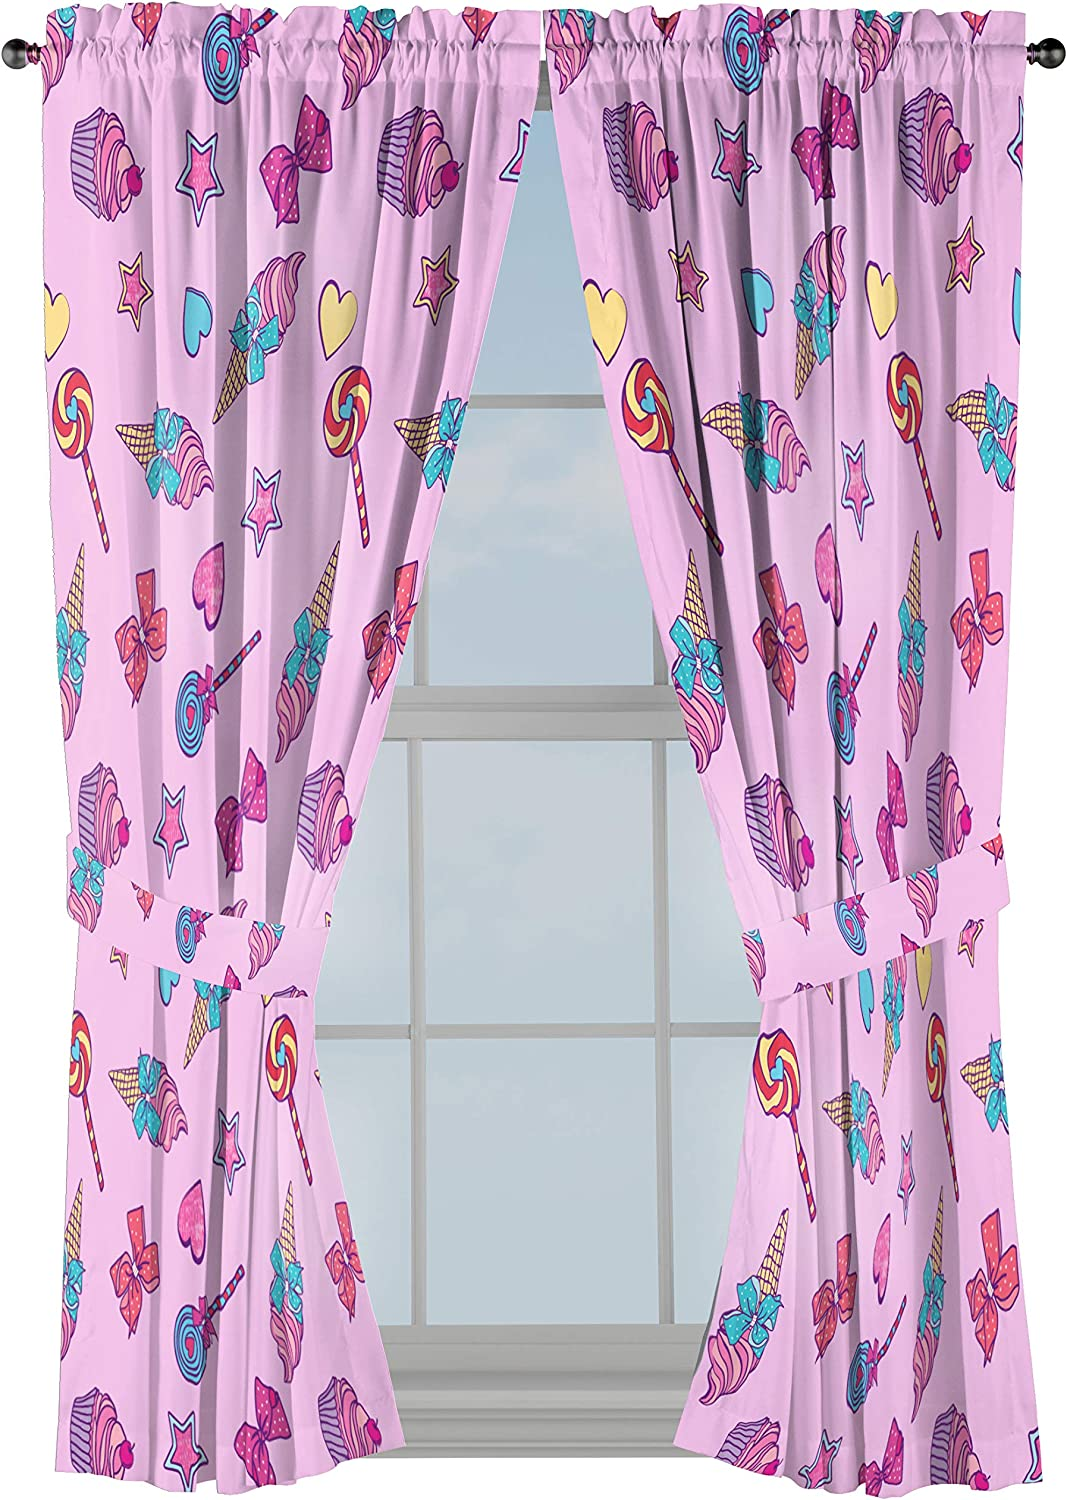 "Jay Franco Nickelodeon JoJo Siwa Dream Believe 63"" inch Drapes 4 Piece Set - Beautiful Room Décor & Easy Set up - Window Curtains Include 2 Panels & 2 Tiebacks (Official Nickelodeon Product)"